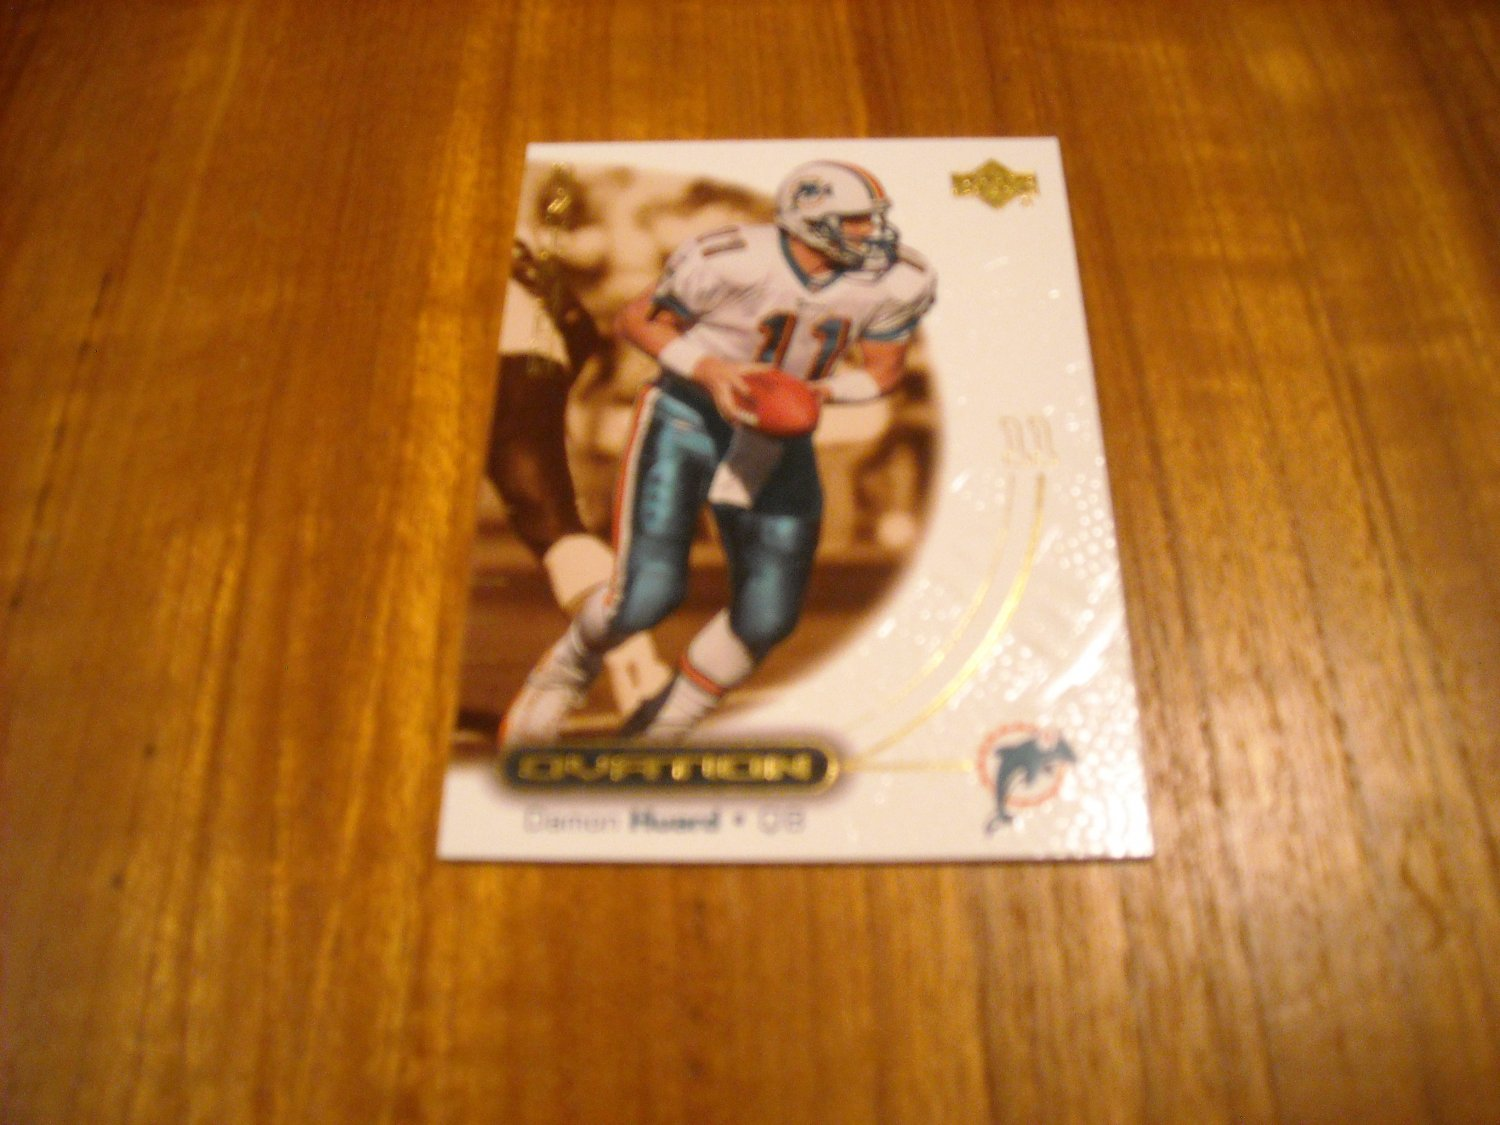 Damon Huard Miami Dolphins QB Card No. 30 - 2000 Upper Deck Football Card